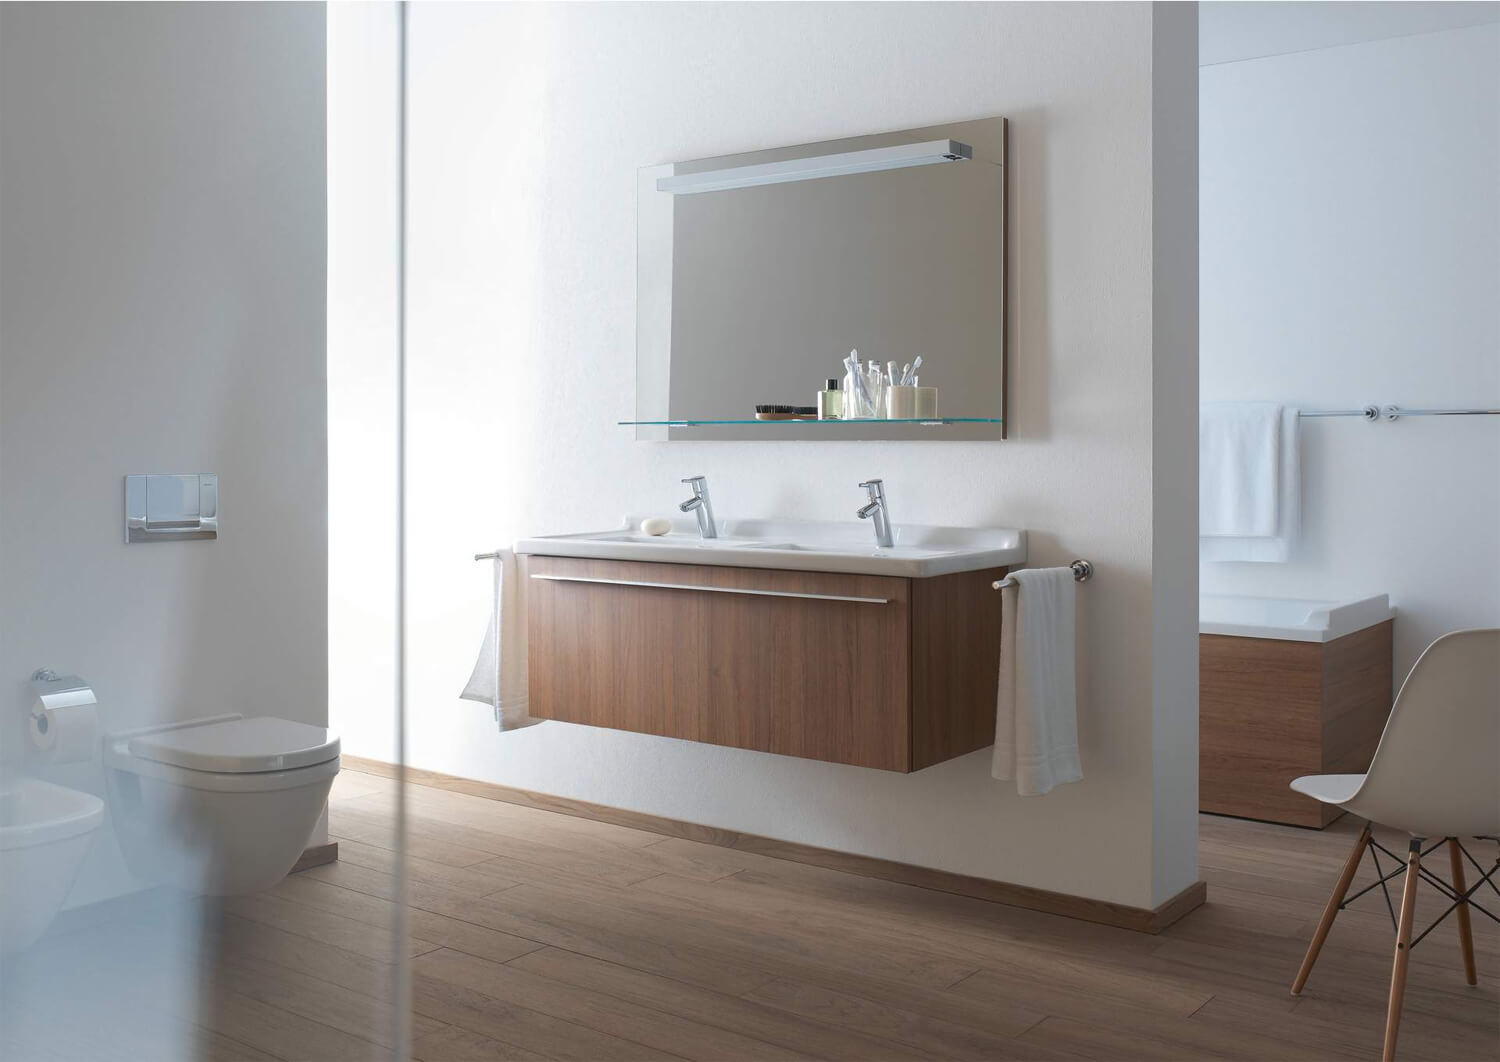 Duravit X Large 1200mm Vanity Unit With 1 Compartment For